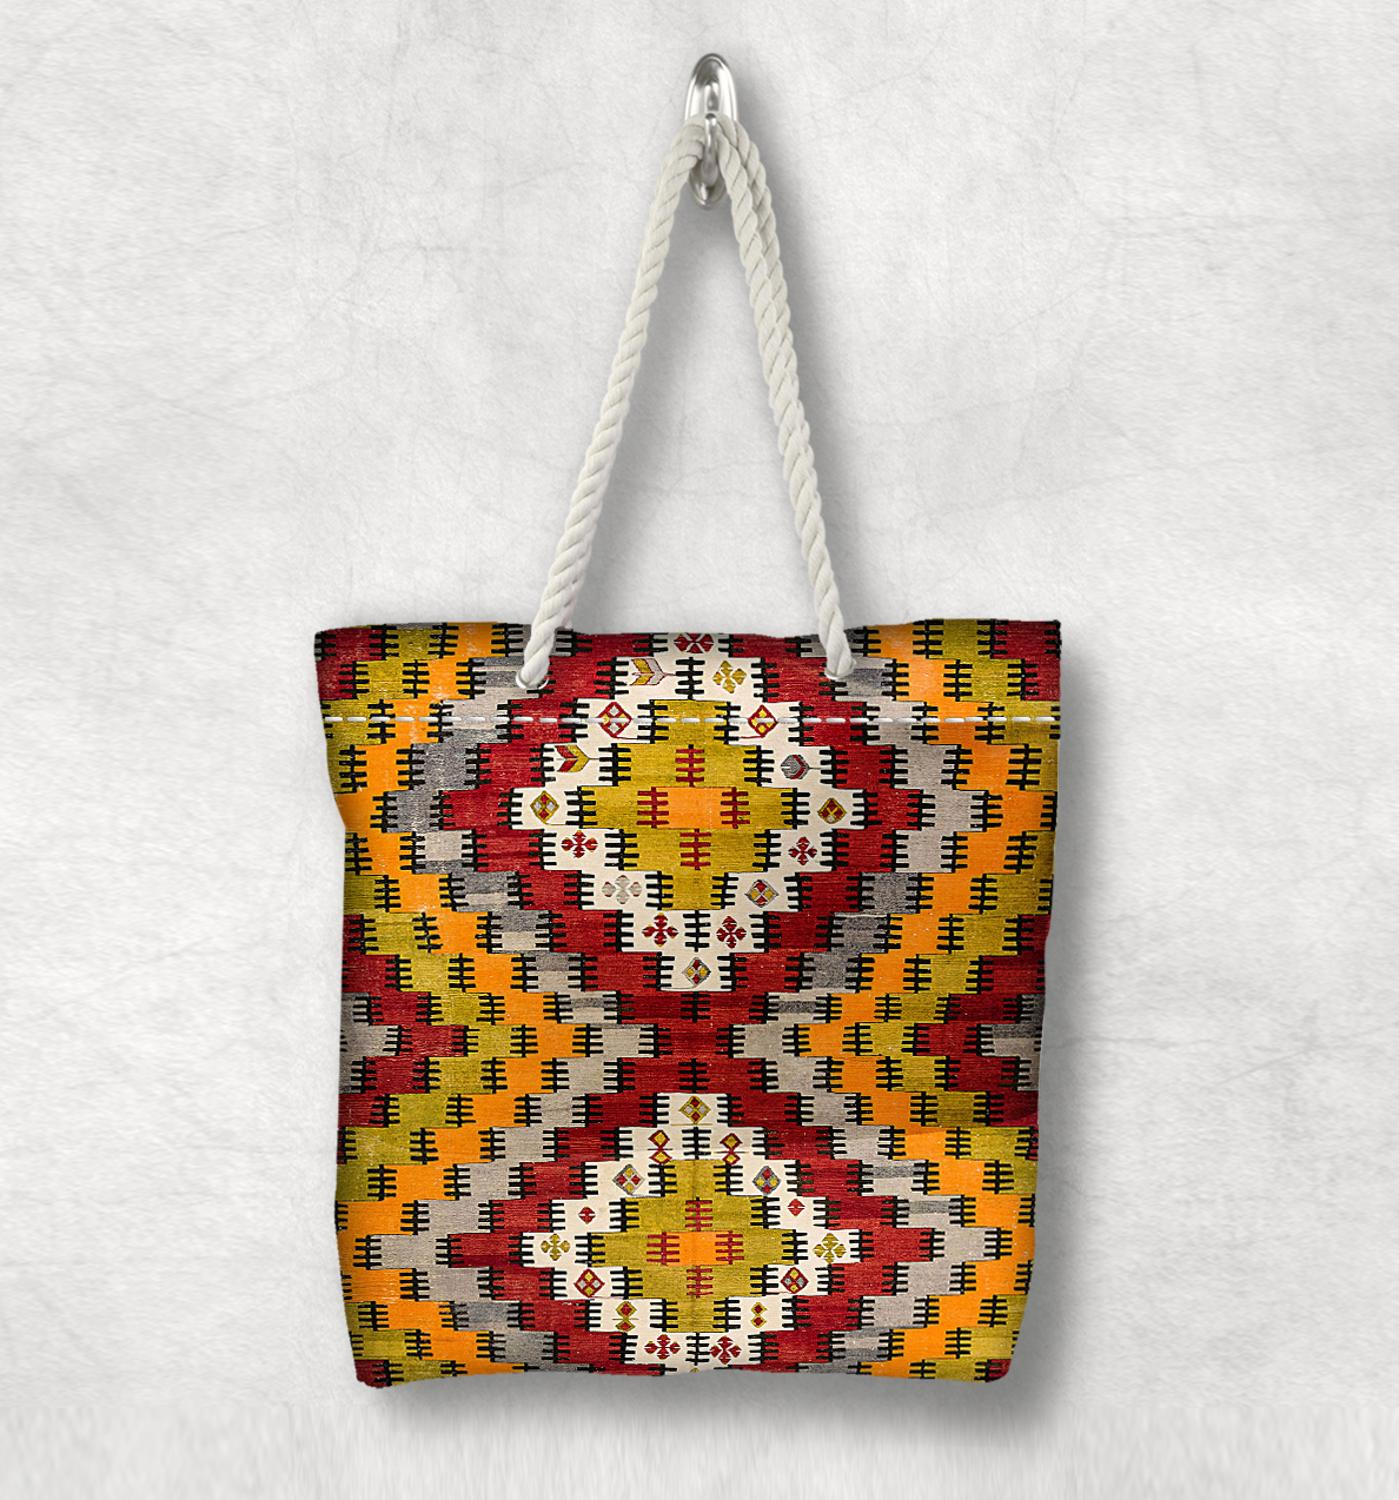 Else Yellow Red Box Anatolia Antique Kilim Design White Rope Handle Canvas Bag Cotton Canvas Zippered Tote Bag Shoulder Bag